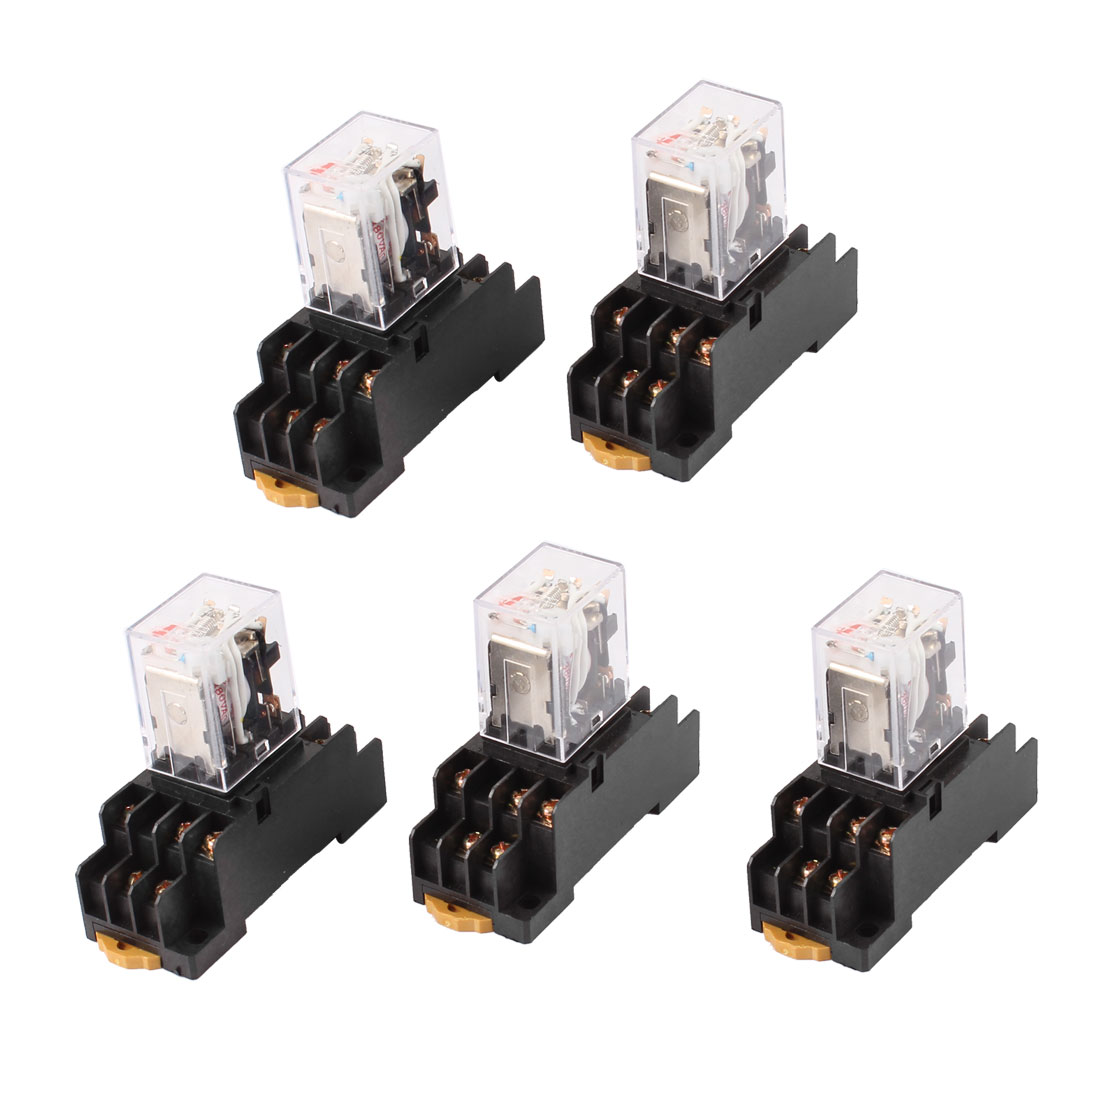 AC 380V Coil Red Indicator Light 3PDT 11 Pins Power Relay 5 Pcs + Socket Base